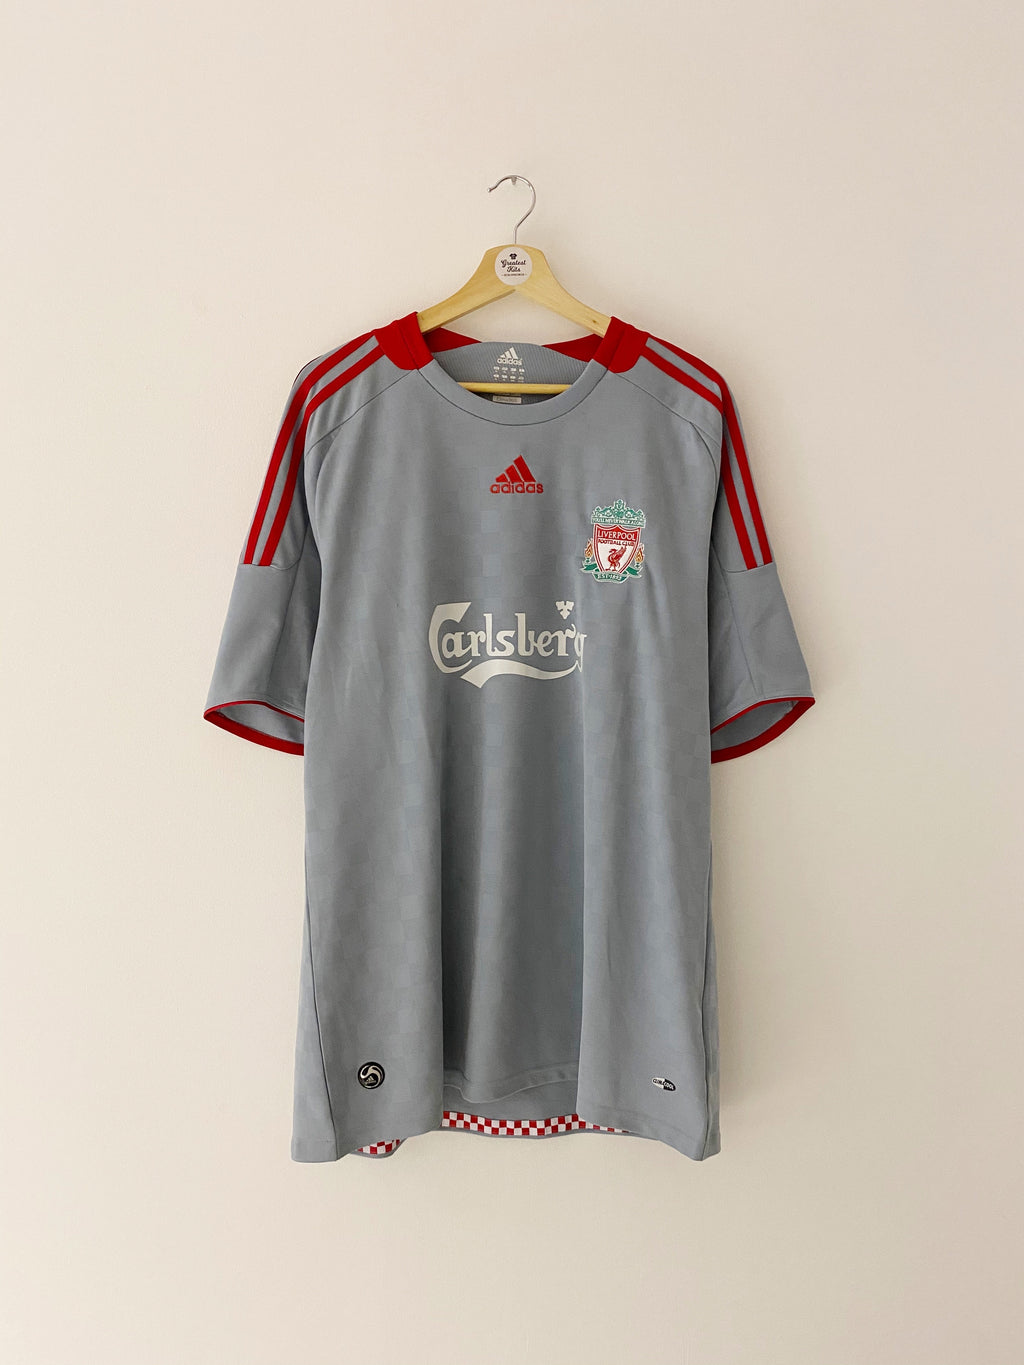 2008/09 Liverpool Away Shirt (XL) 8.5/10